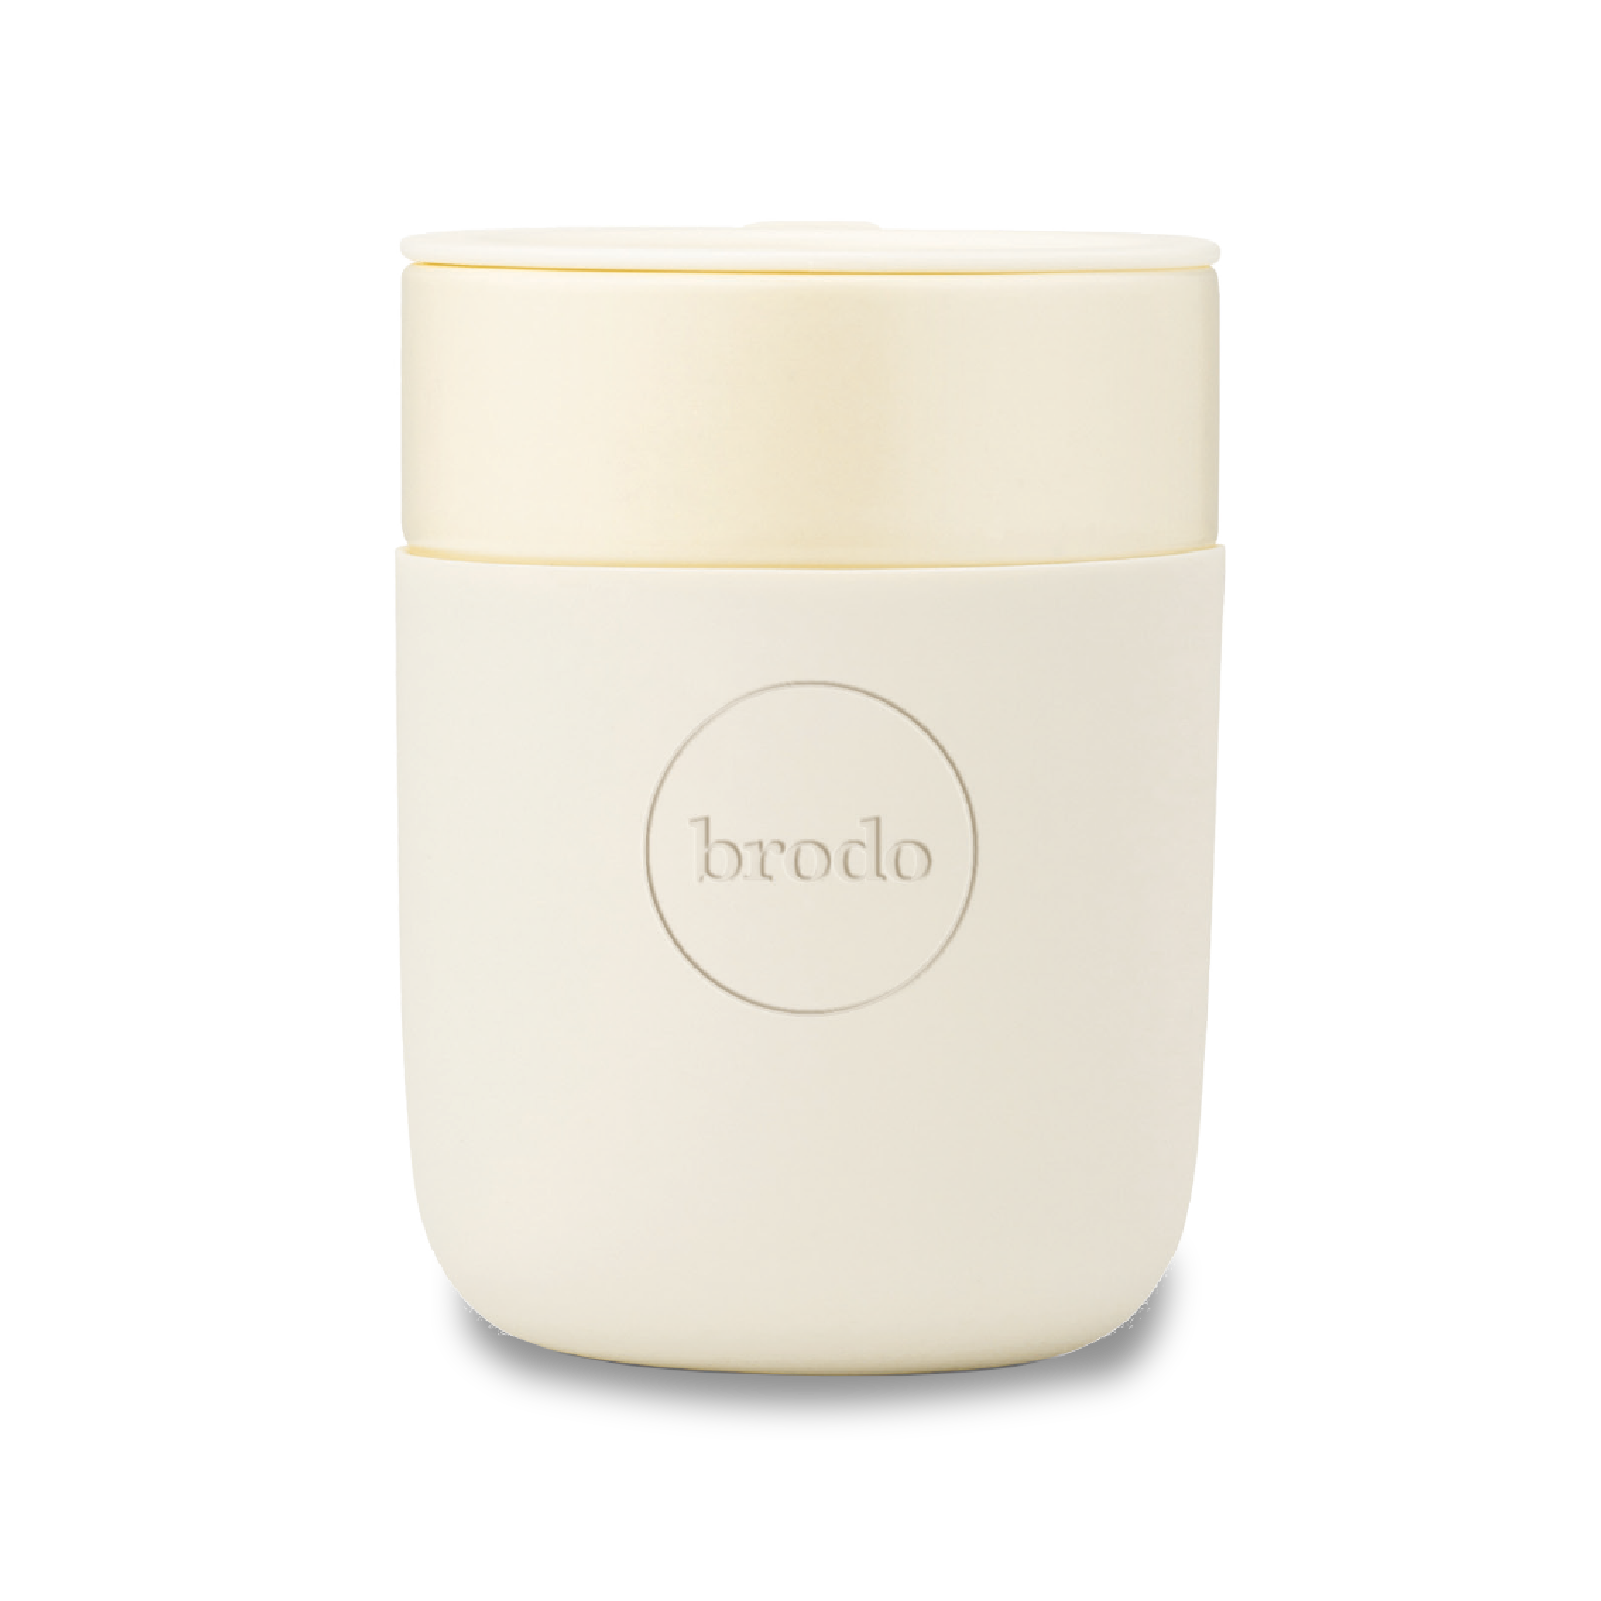 The Brodo Ceramic To-Go Mug